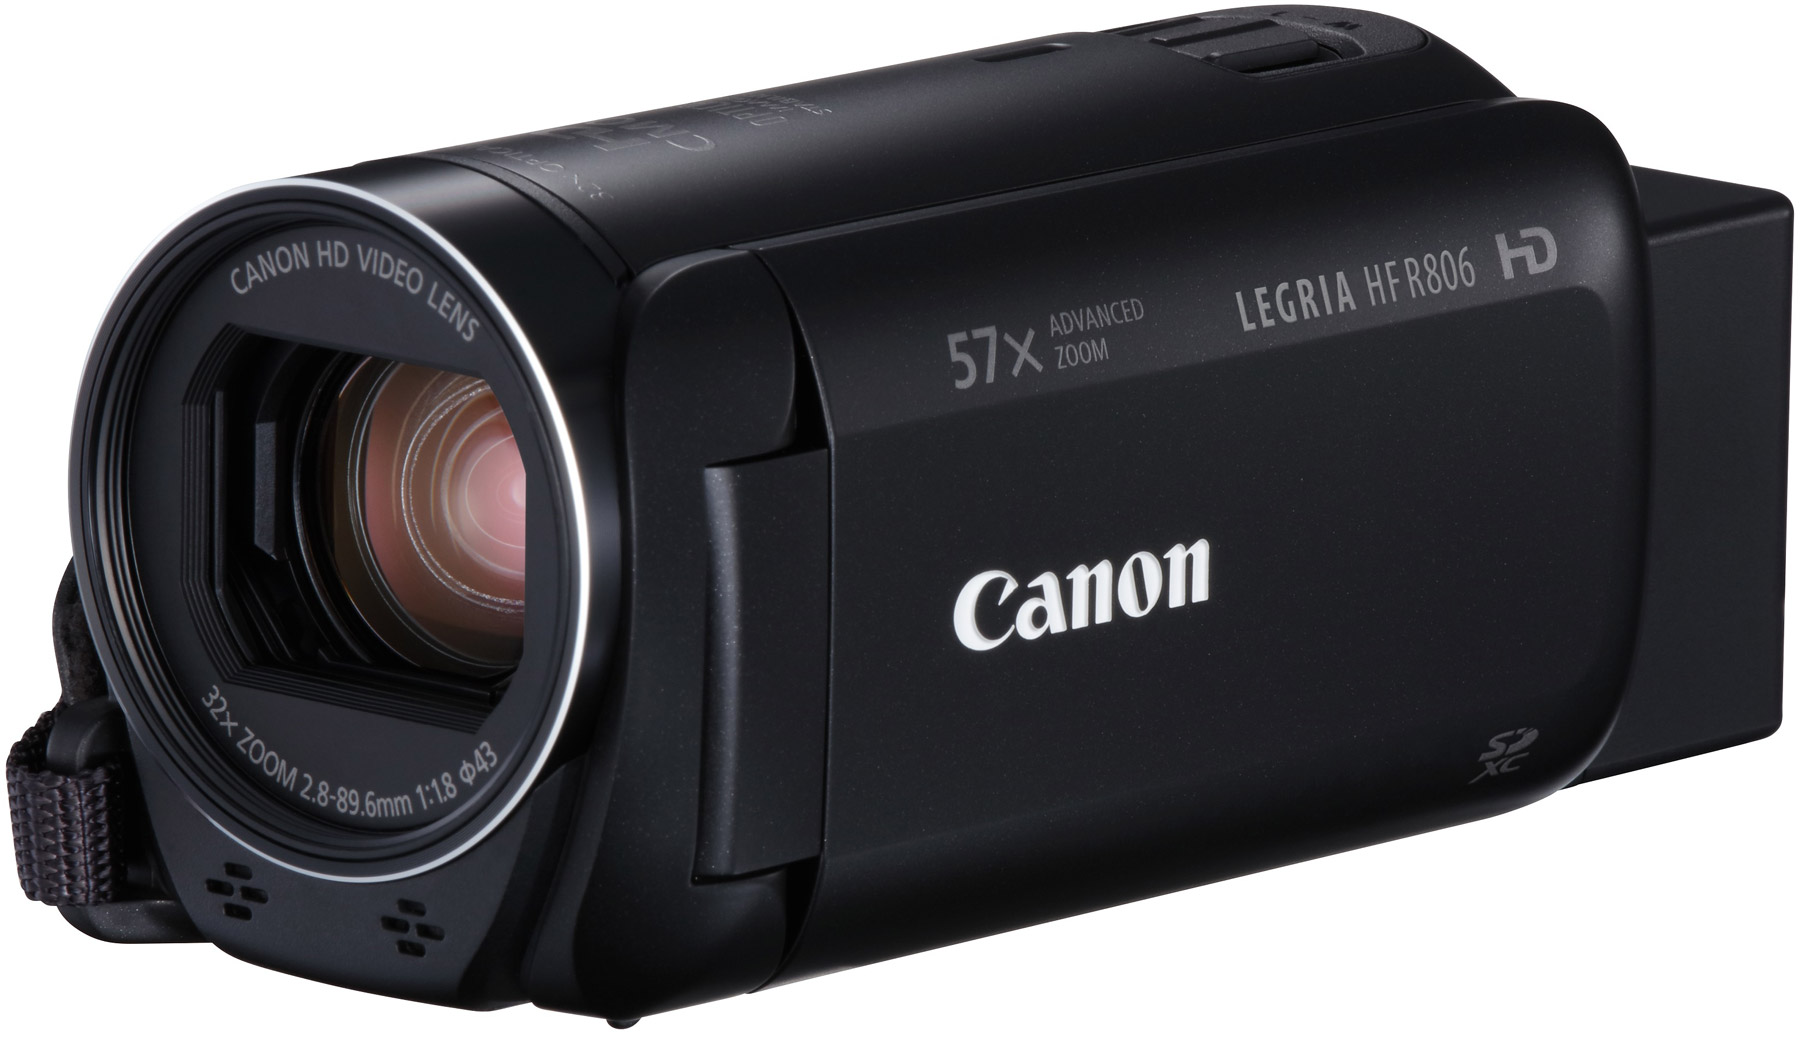 Camera Video Canon LEGRIA HF R806, 1080p, Zoom Optic 32x, Negru + CashBack Canon 140Lei